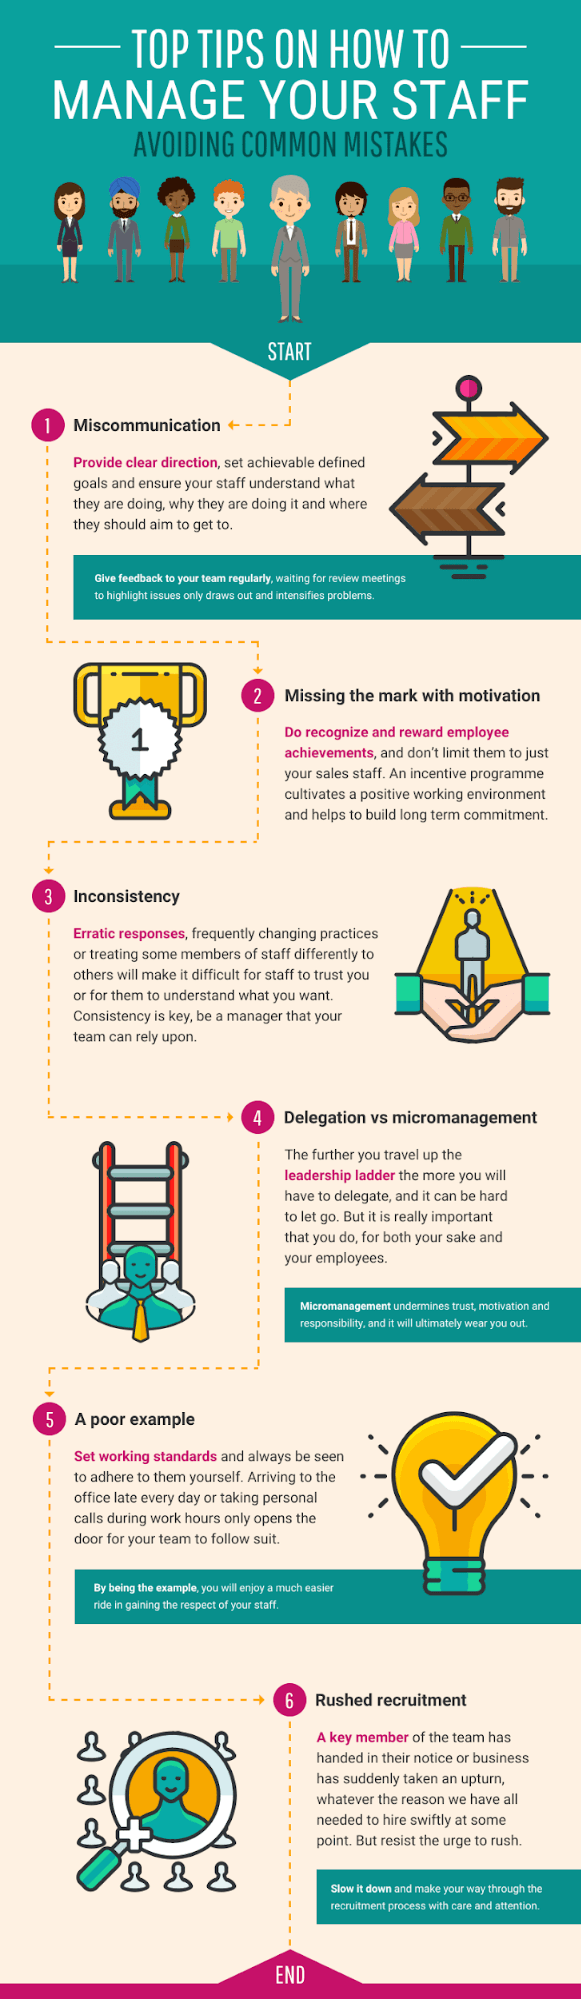 Top Tips On How To Manage Your Staff